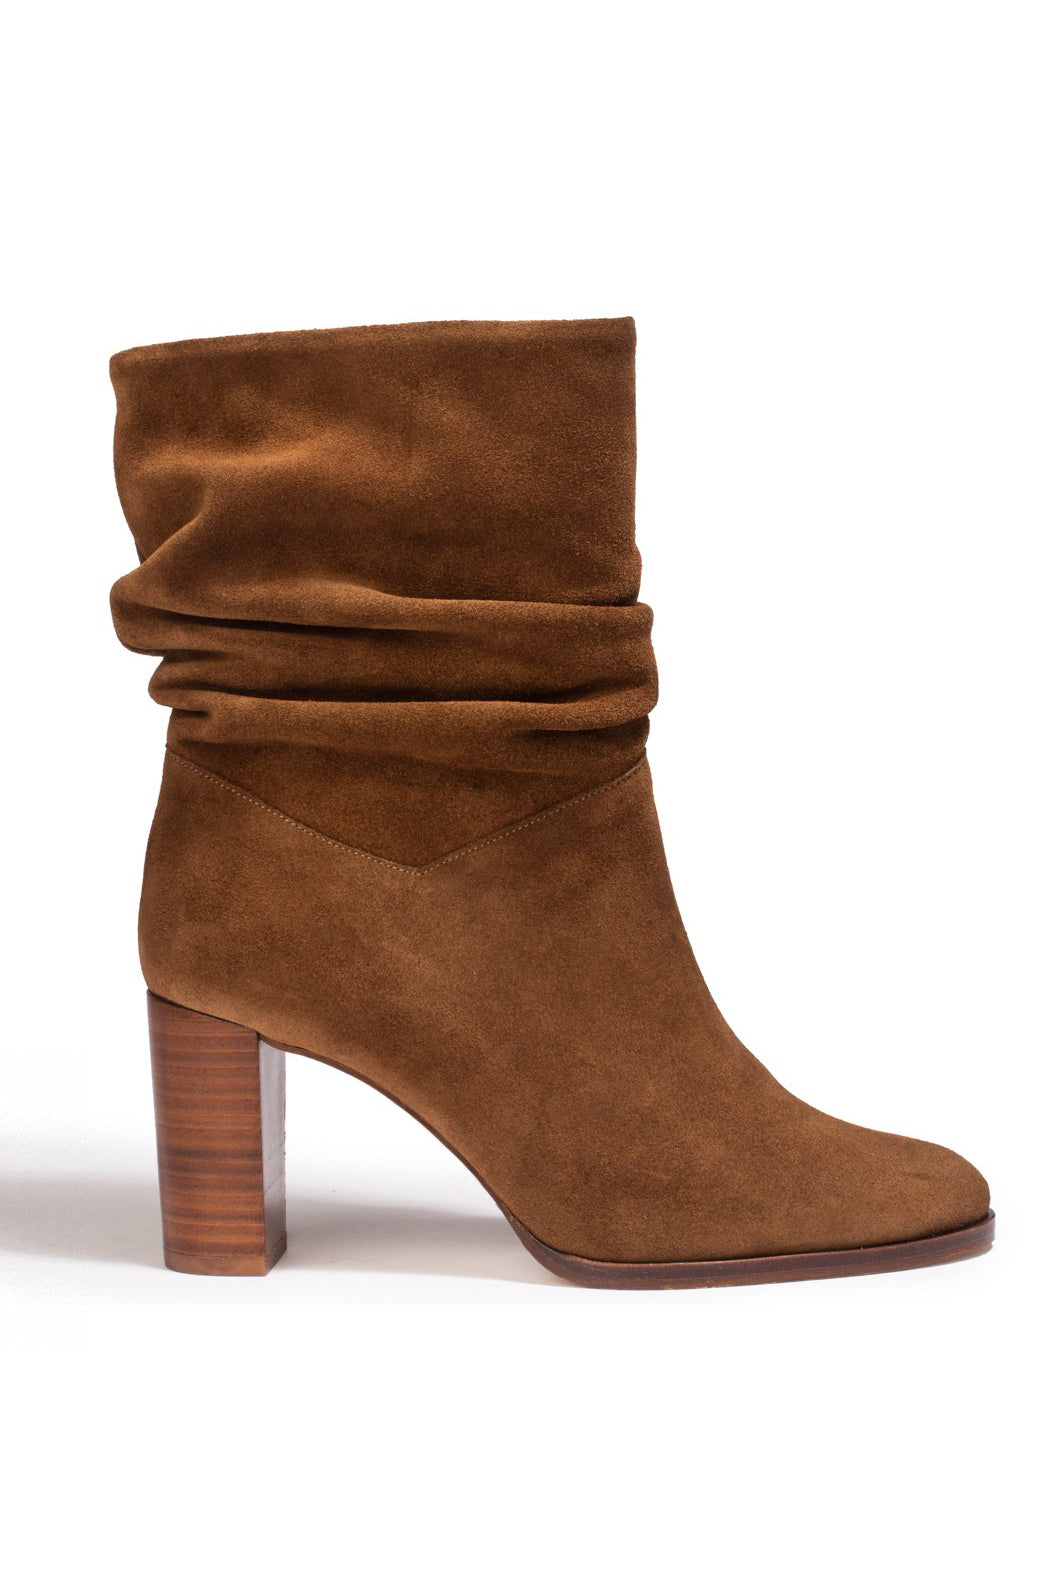 Bottines Sixtine Marron - Anaki Paris